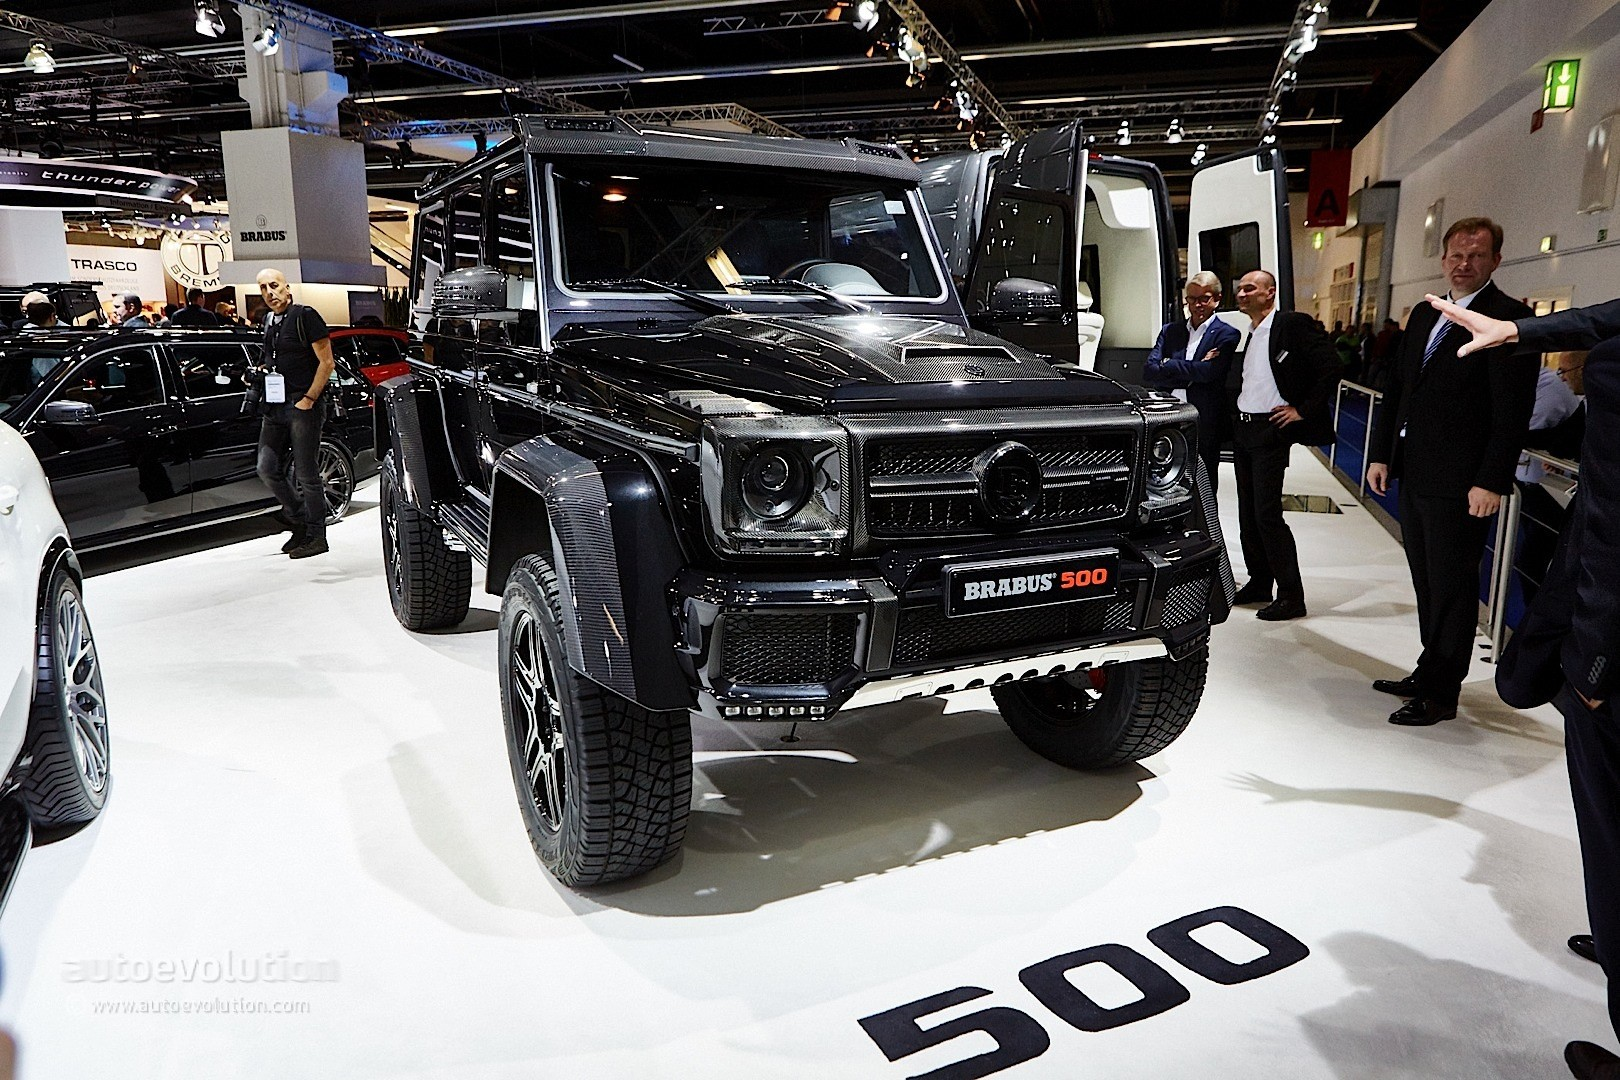 Se Large in addition Mercedesbenzslrstrilingmoss additionally Mercedes Benz E Black as well Px Isdera Imperator likewise Brabus Mercedes G X And G Class Biturbo Widestar Militarise Frankfurt Live Photos. on mercedes benz 300